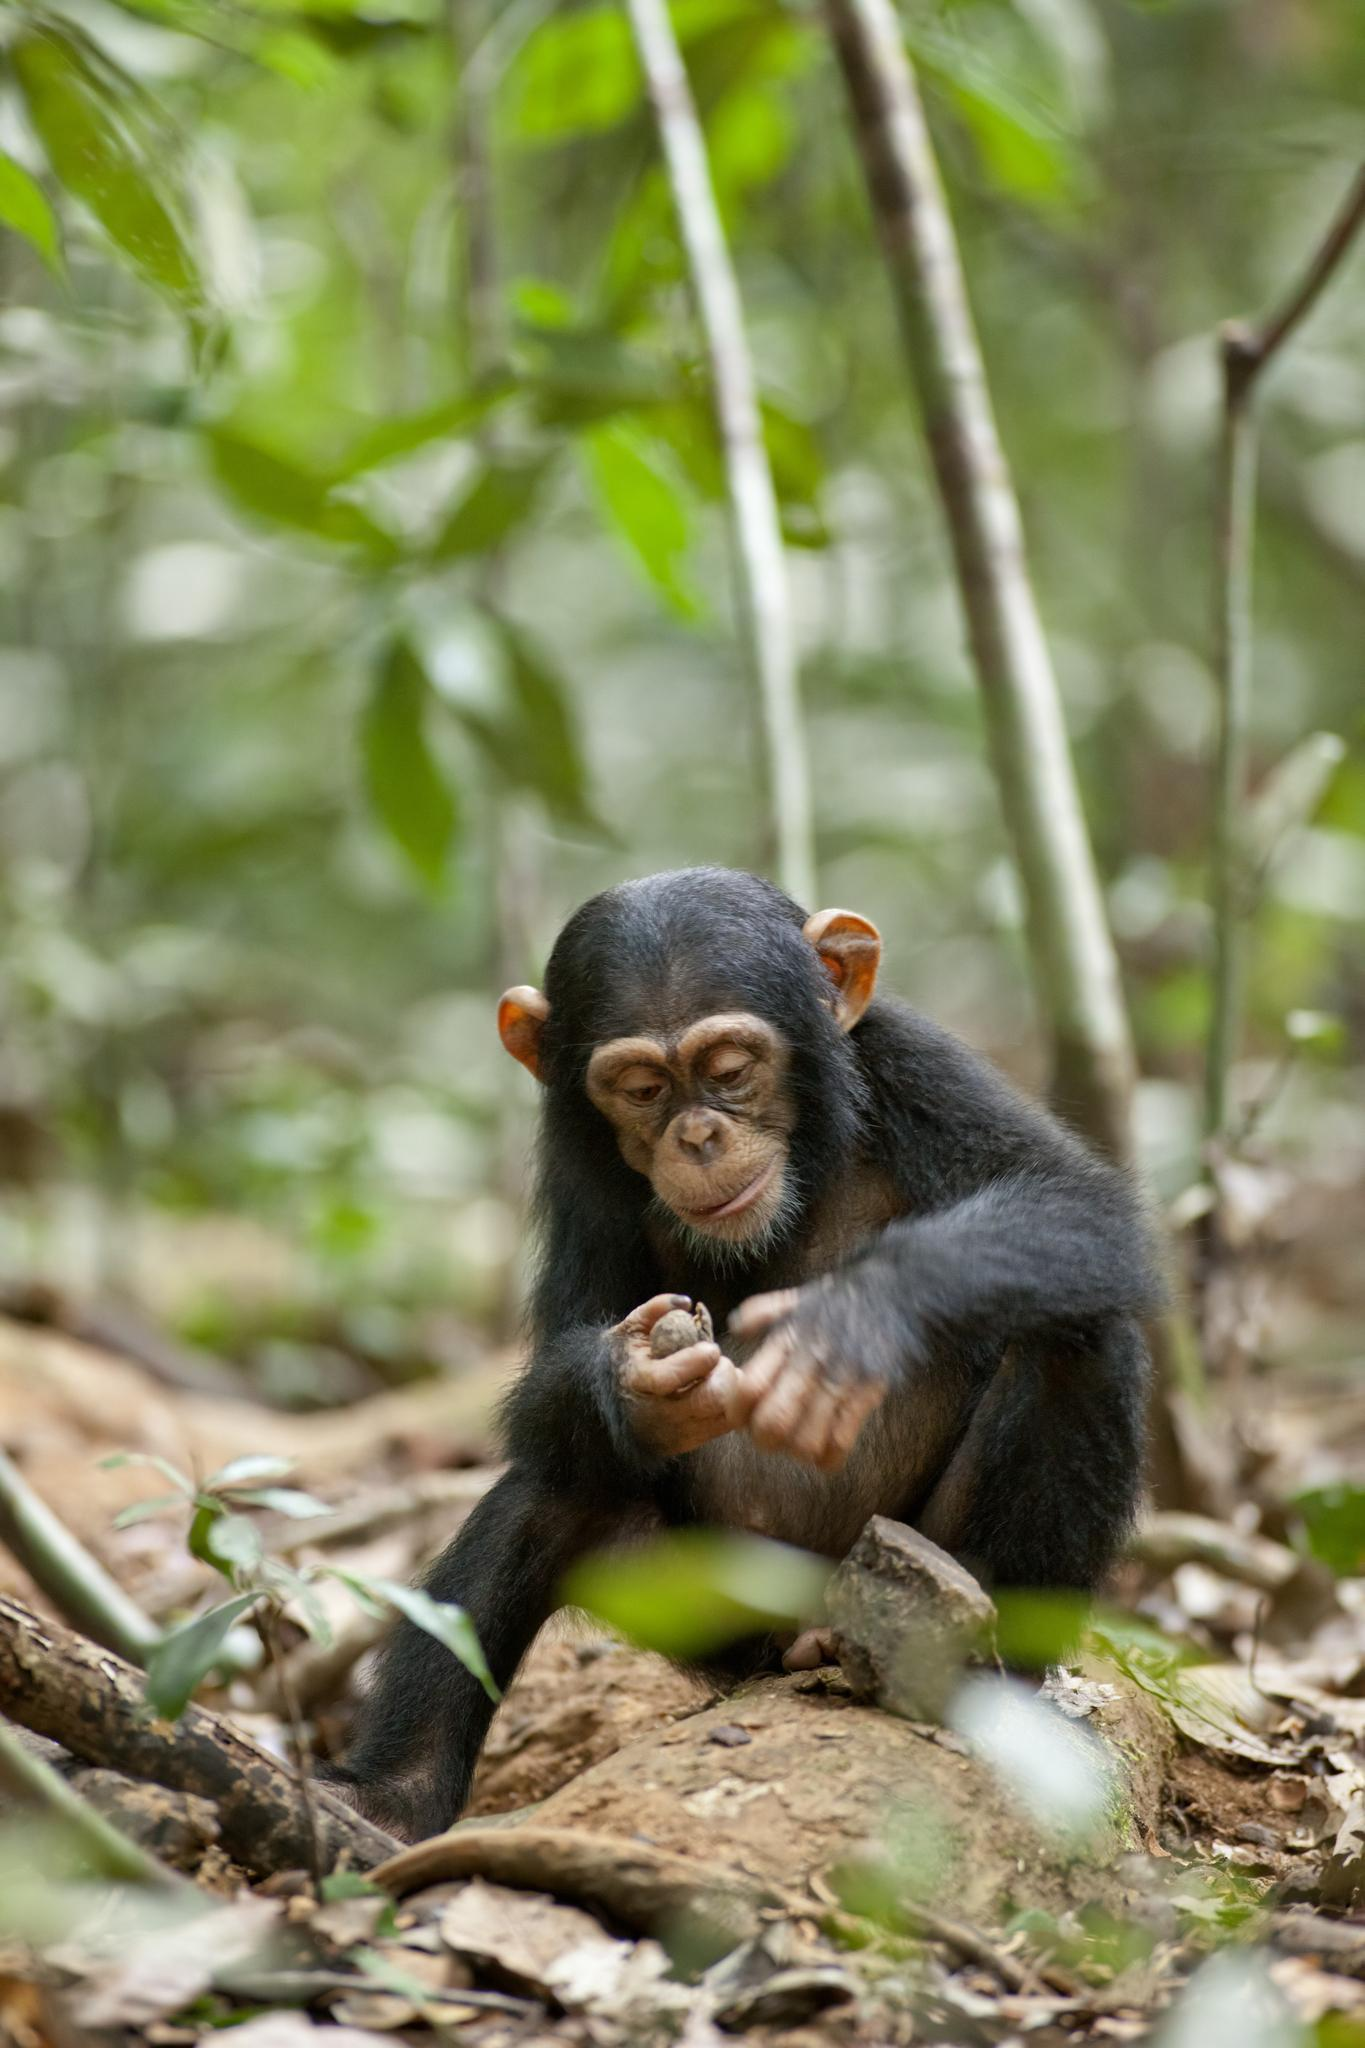 15320 Screensavers and Wallpapers Monkeys for phone. Download Animals, Monkeys pictures for free